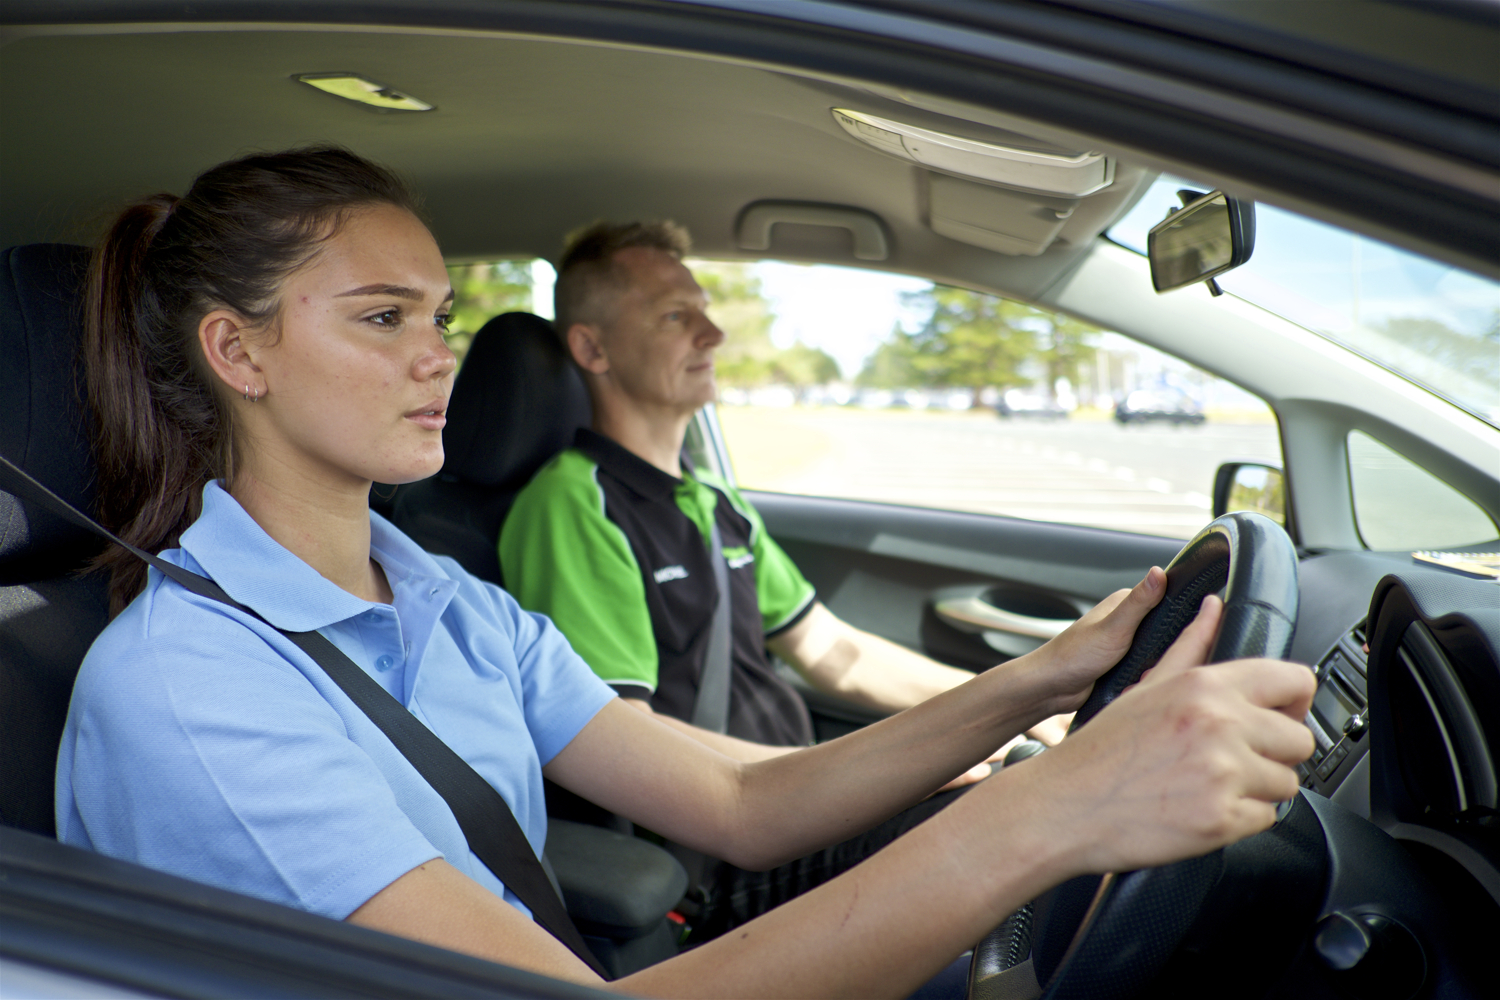 Driving instructor and student in car